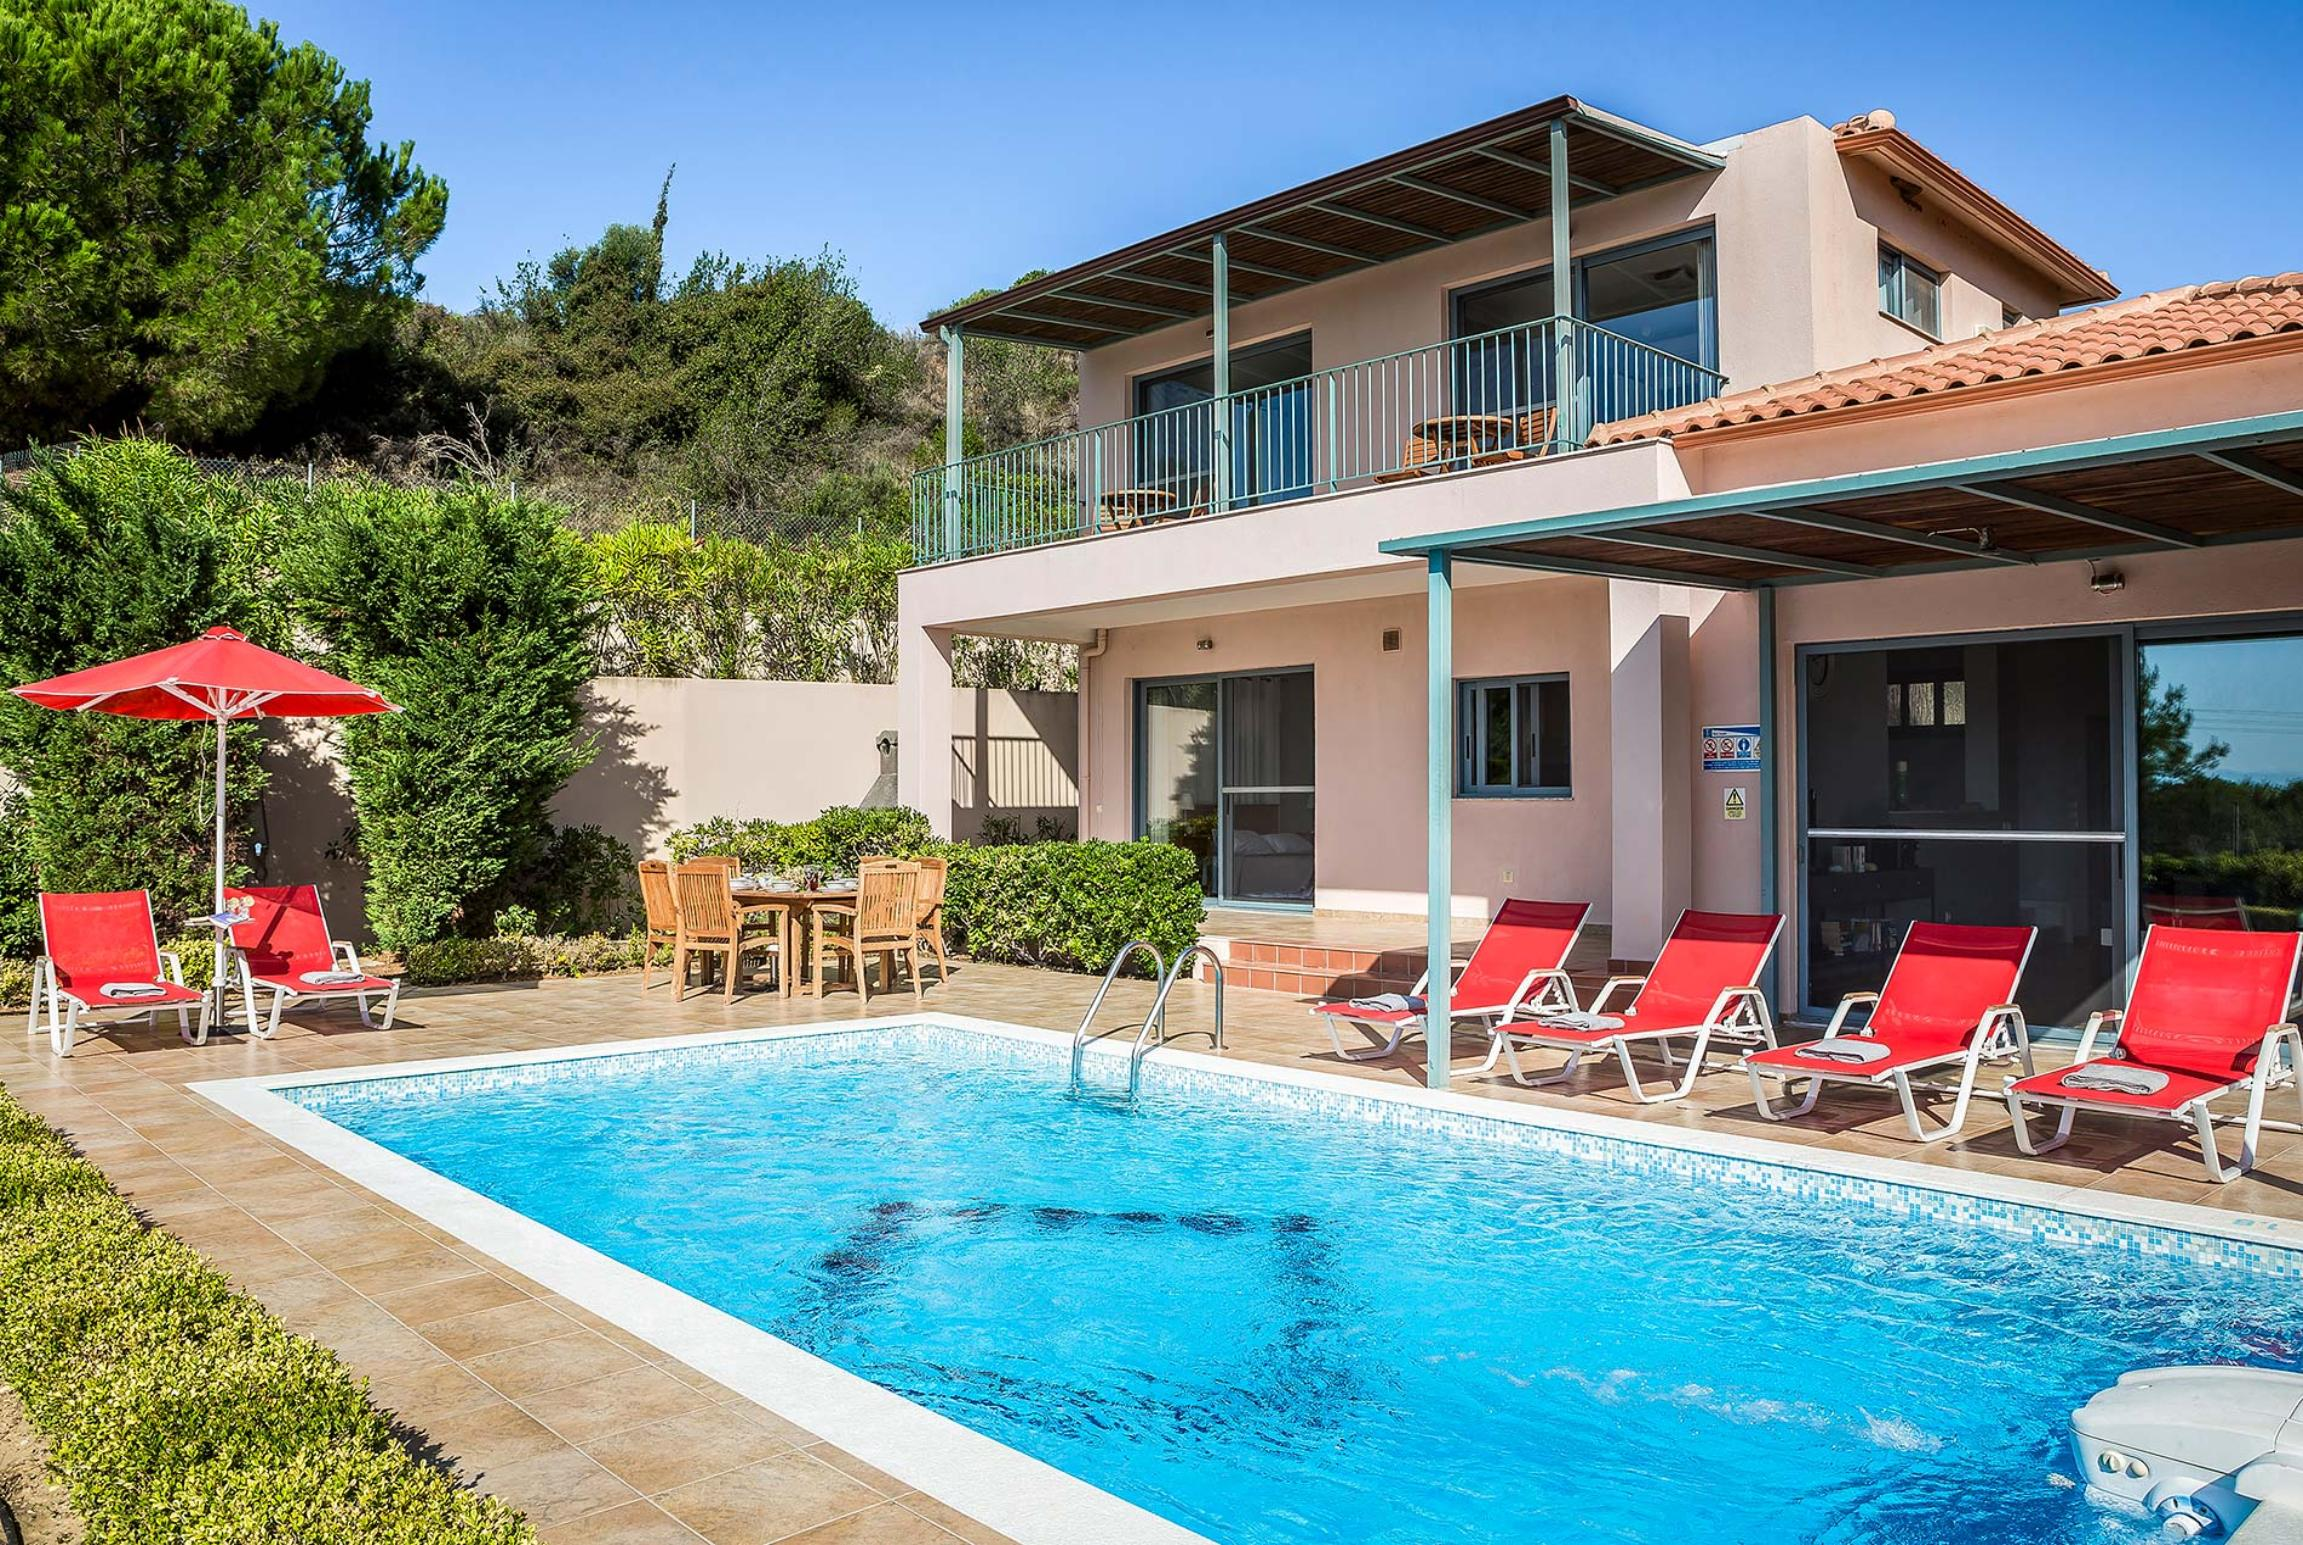 Read more about Villa Costa villa